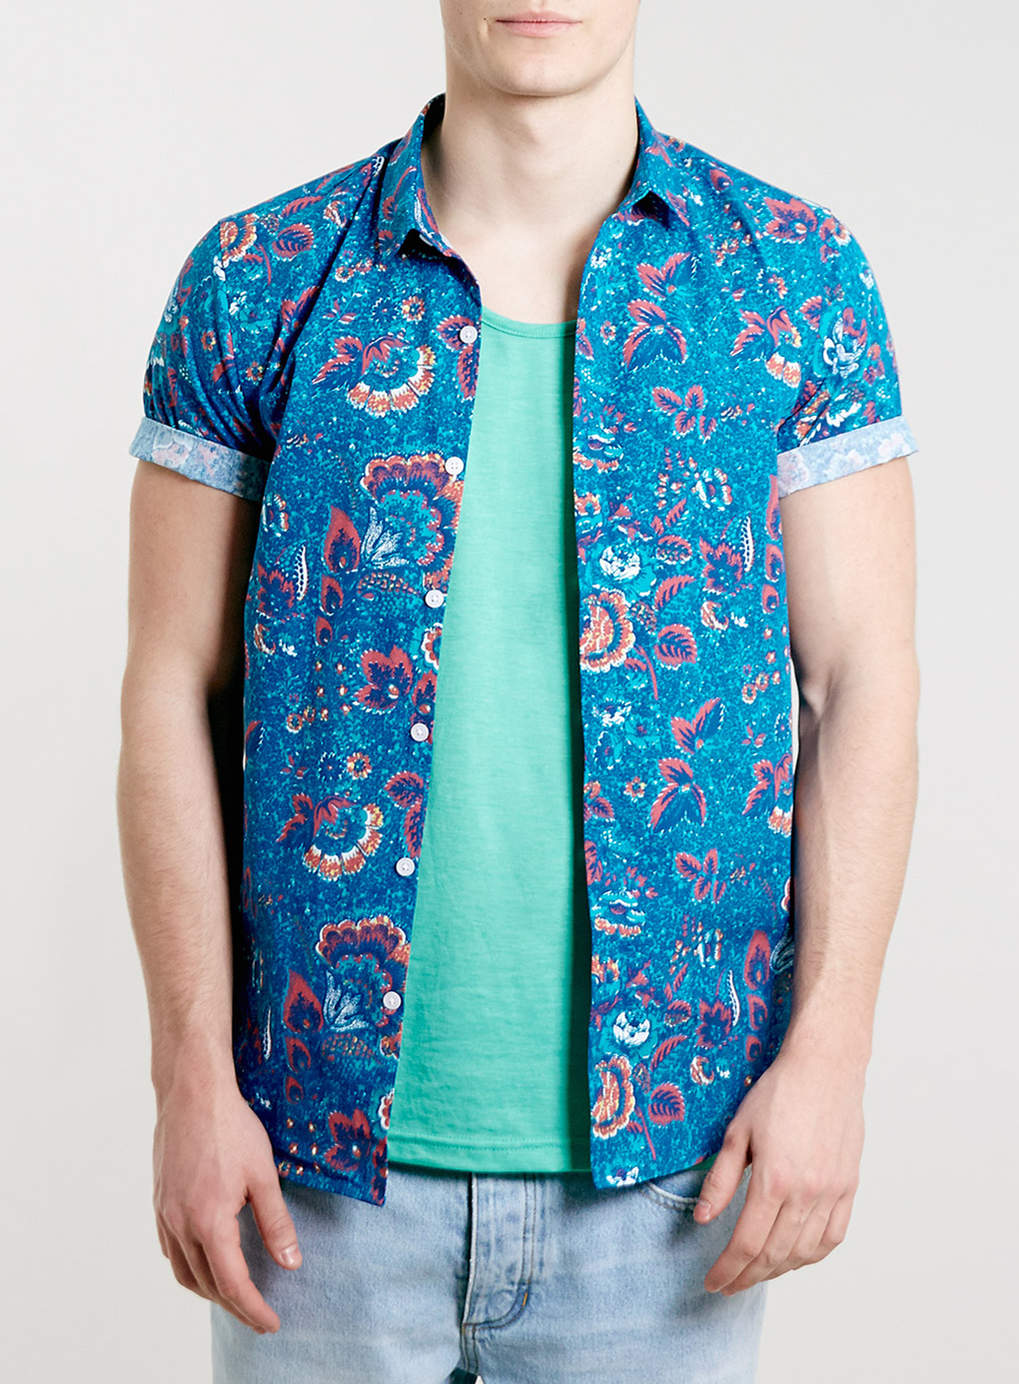 Blue Floral Short Sleeve Shirt - Men's Shirts - Clothing